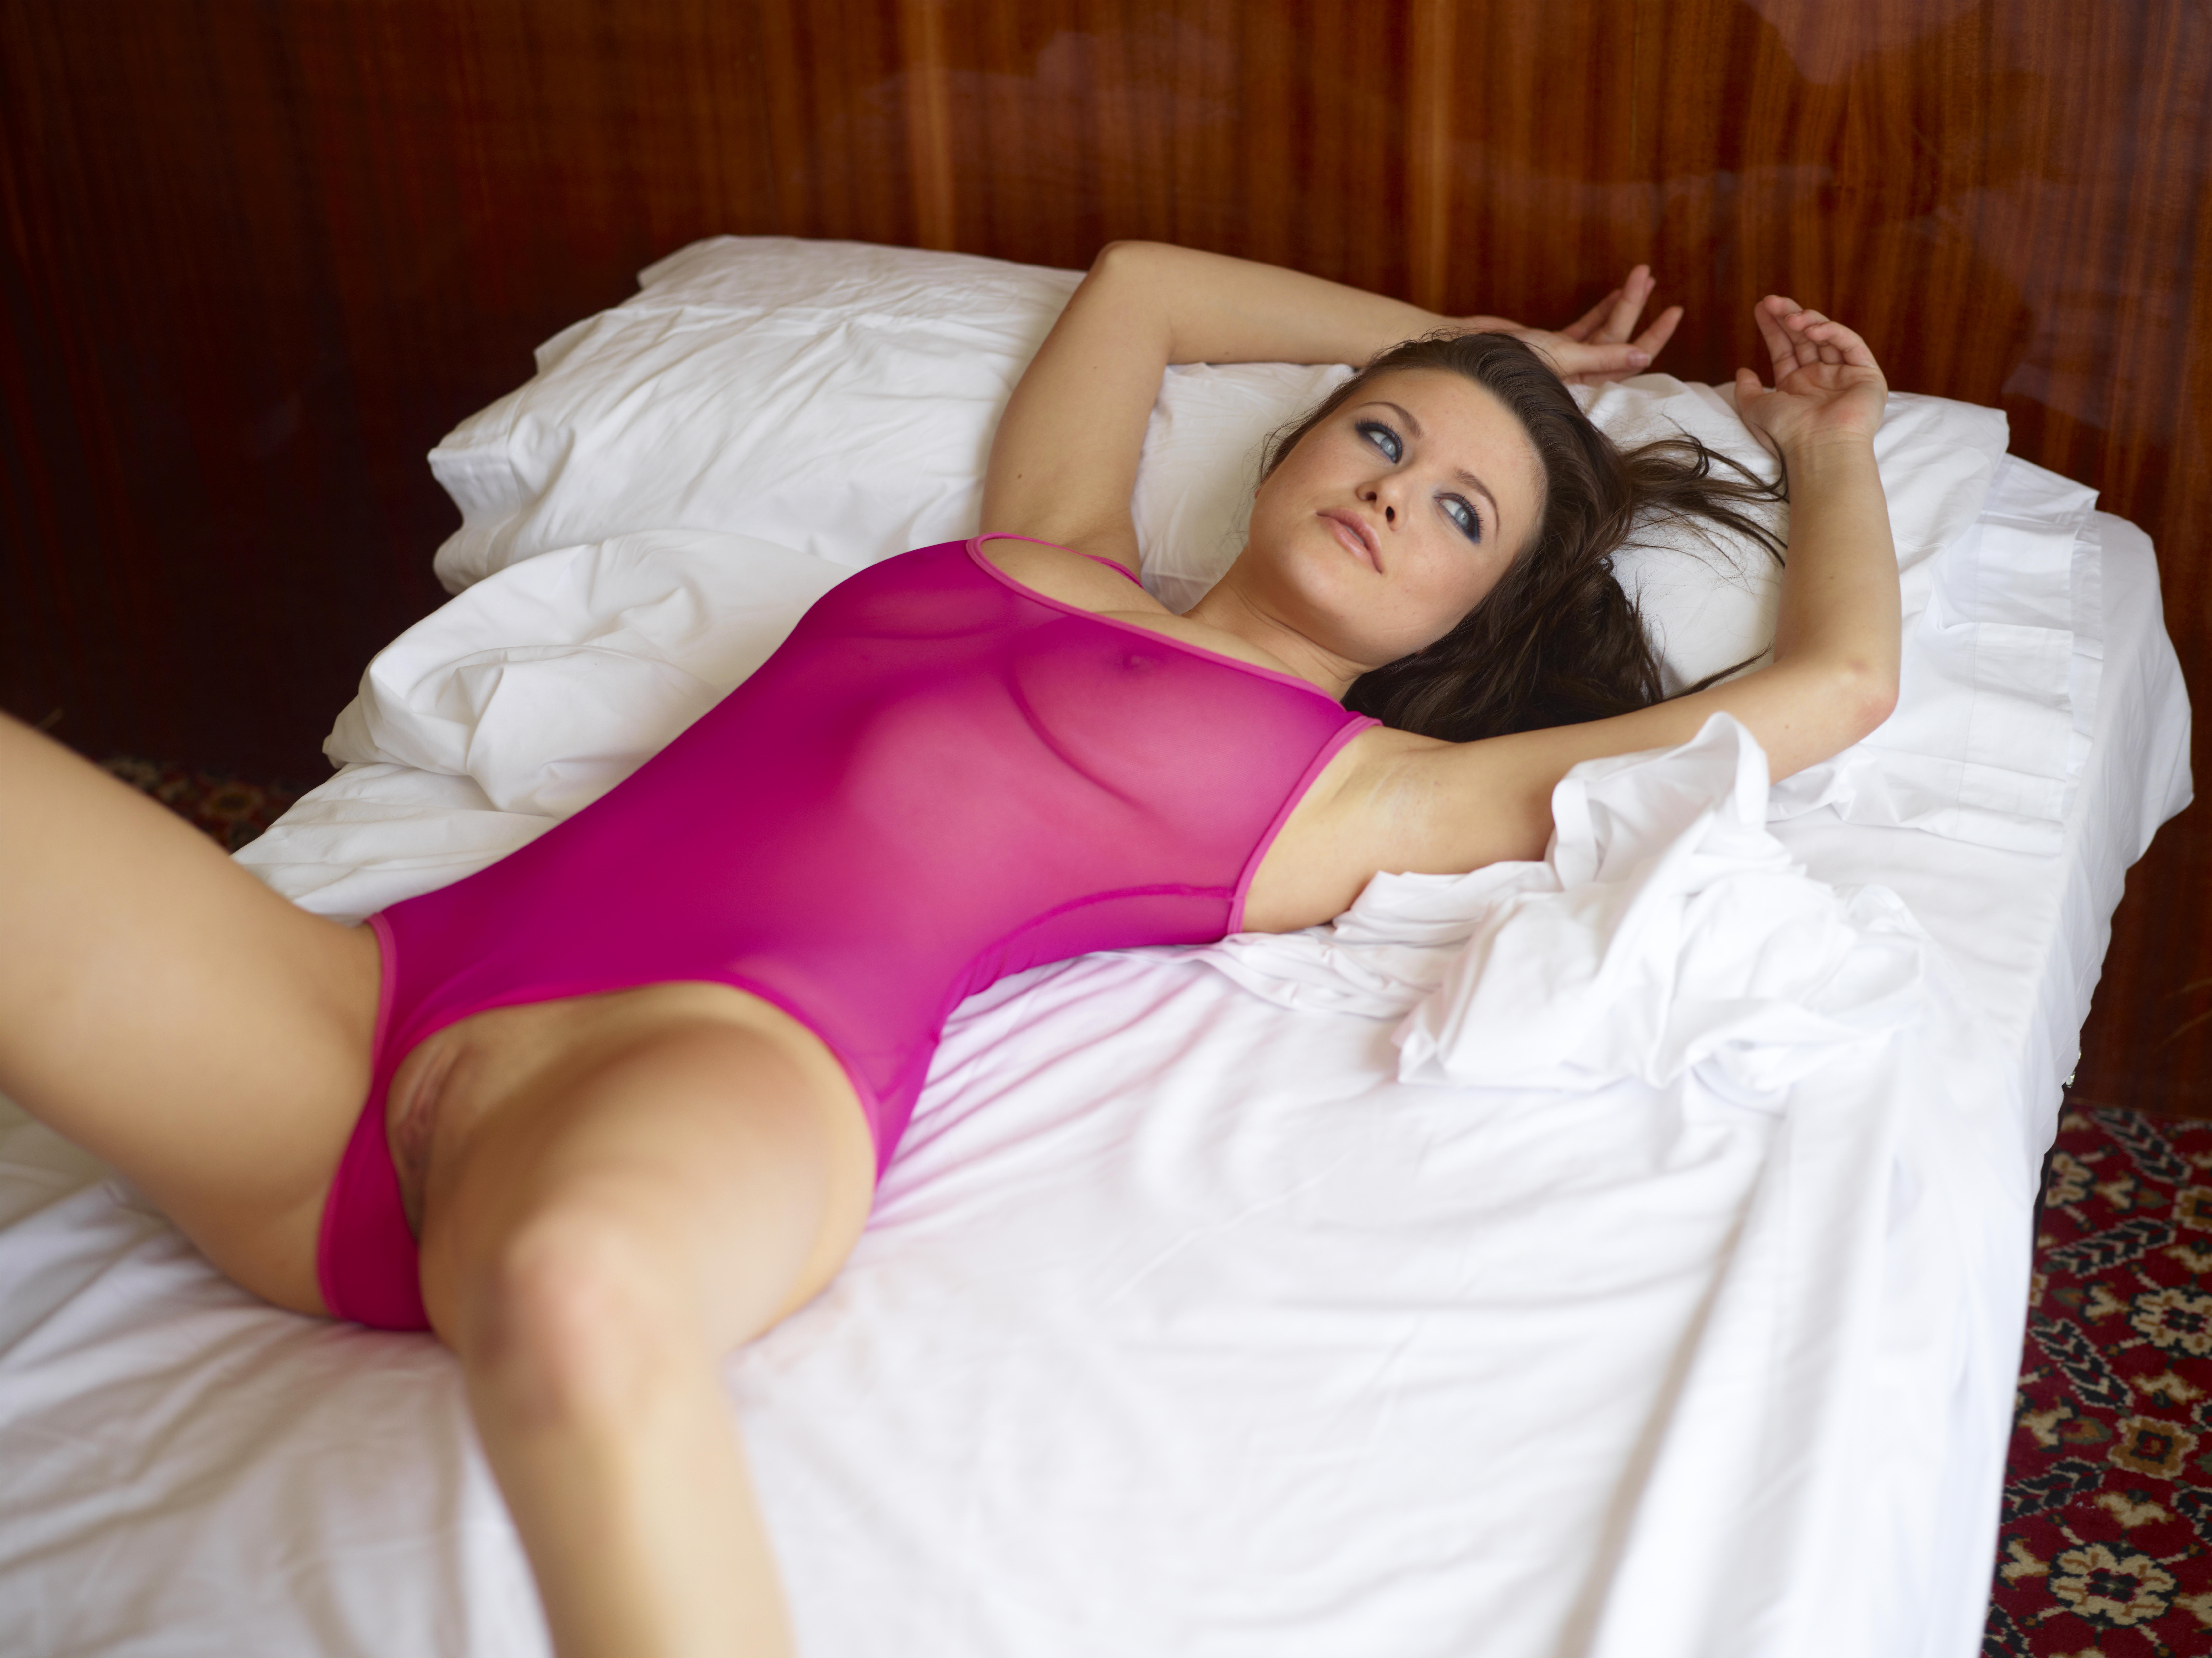 Erotic stories first time for women